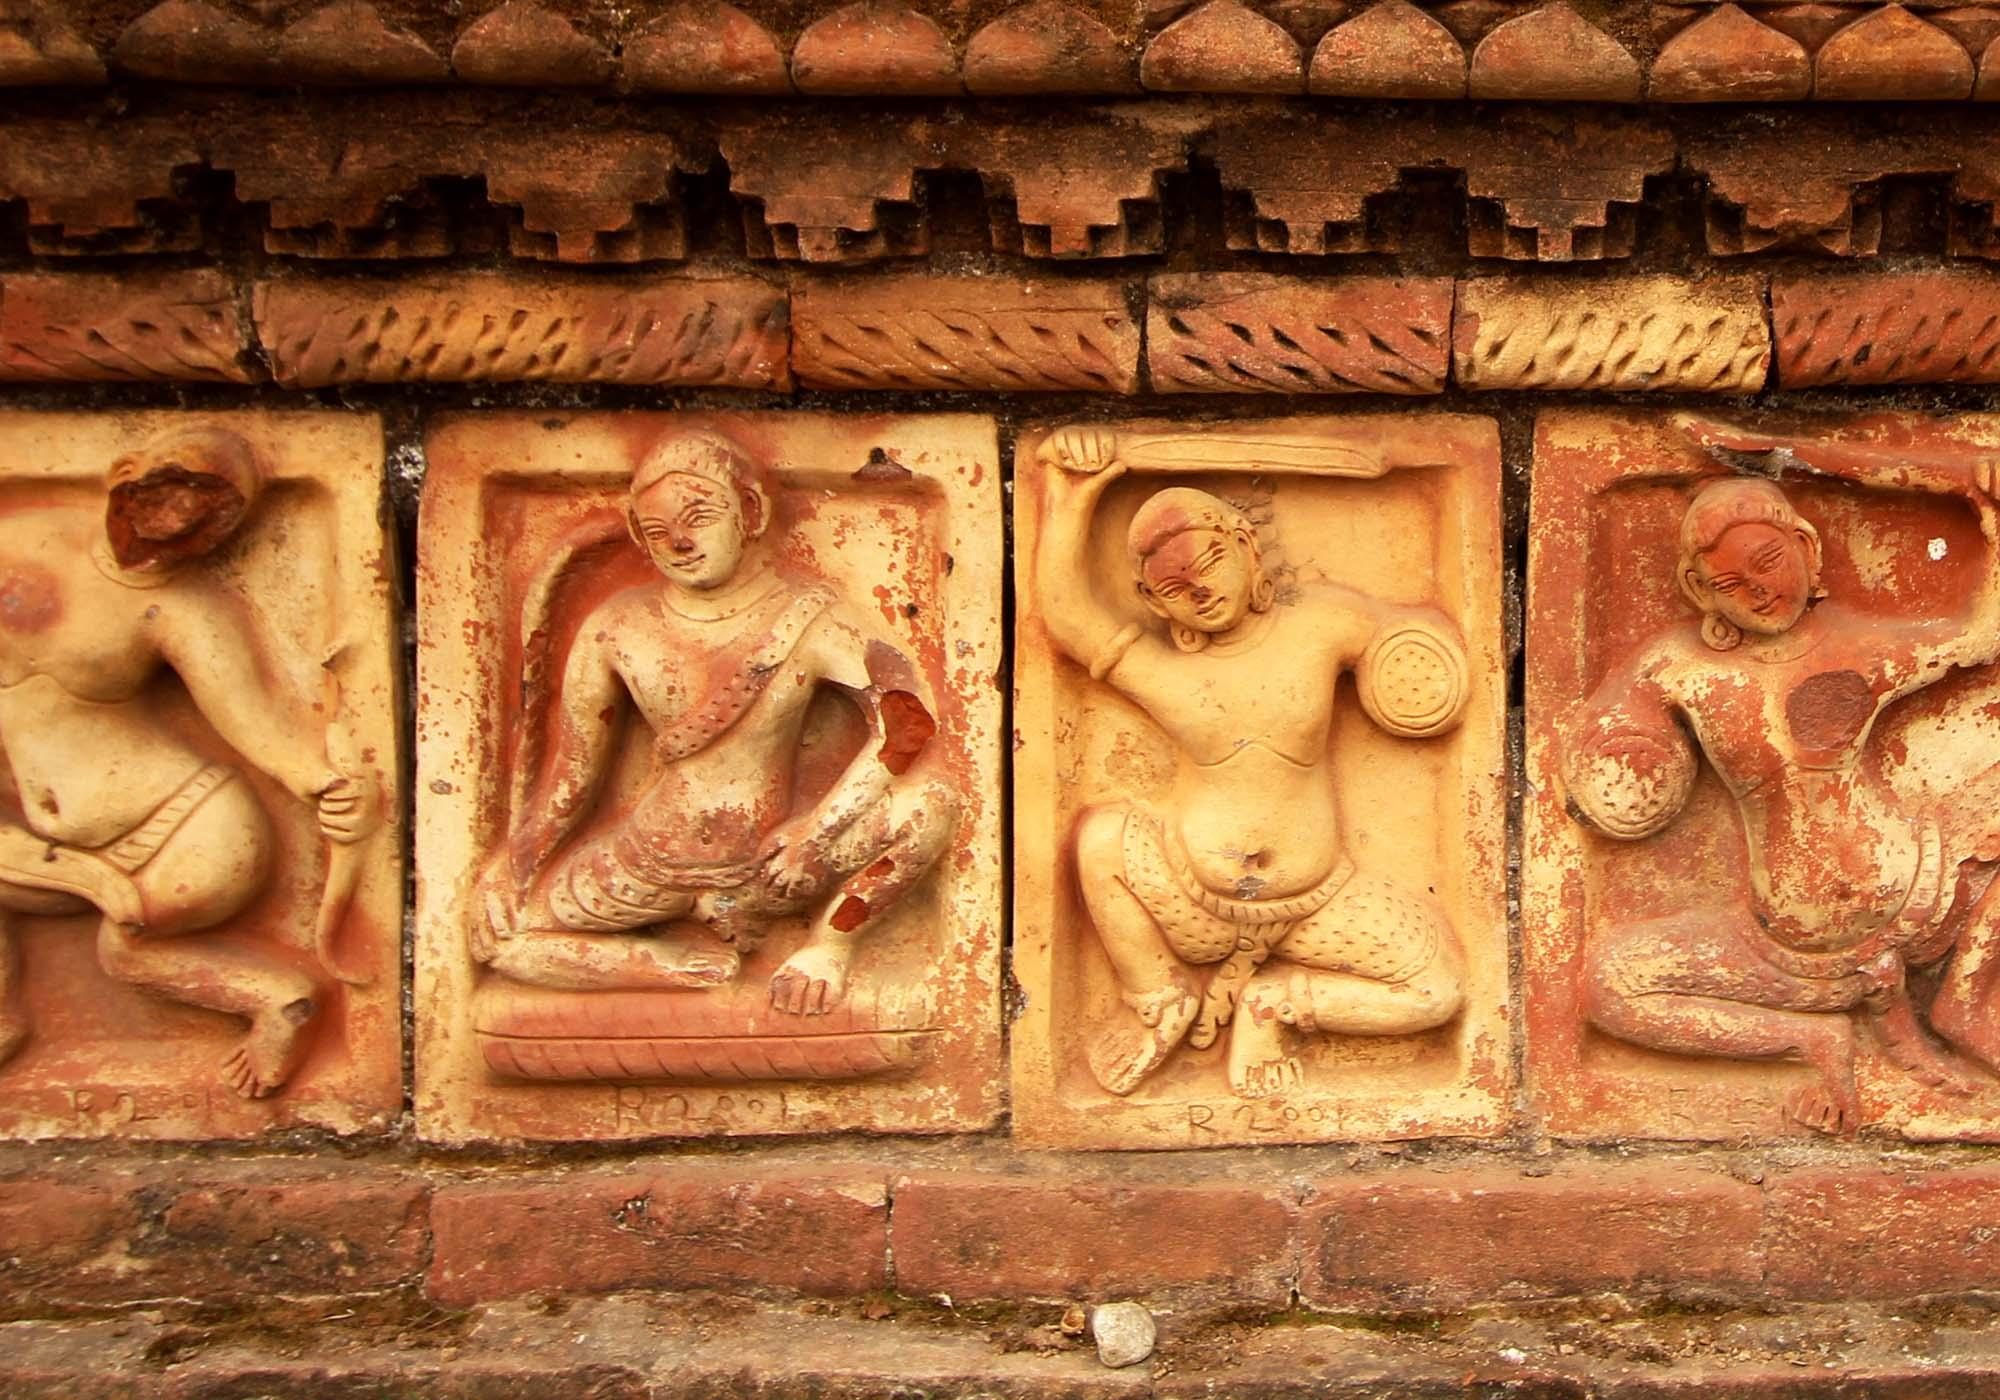 Close up view of terracotta plaques at Paharpur Buddhist Monastery (Somapura Mahavihara) – © Roni Kabir Nurul